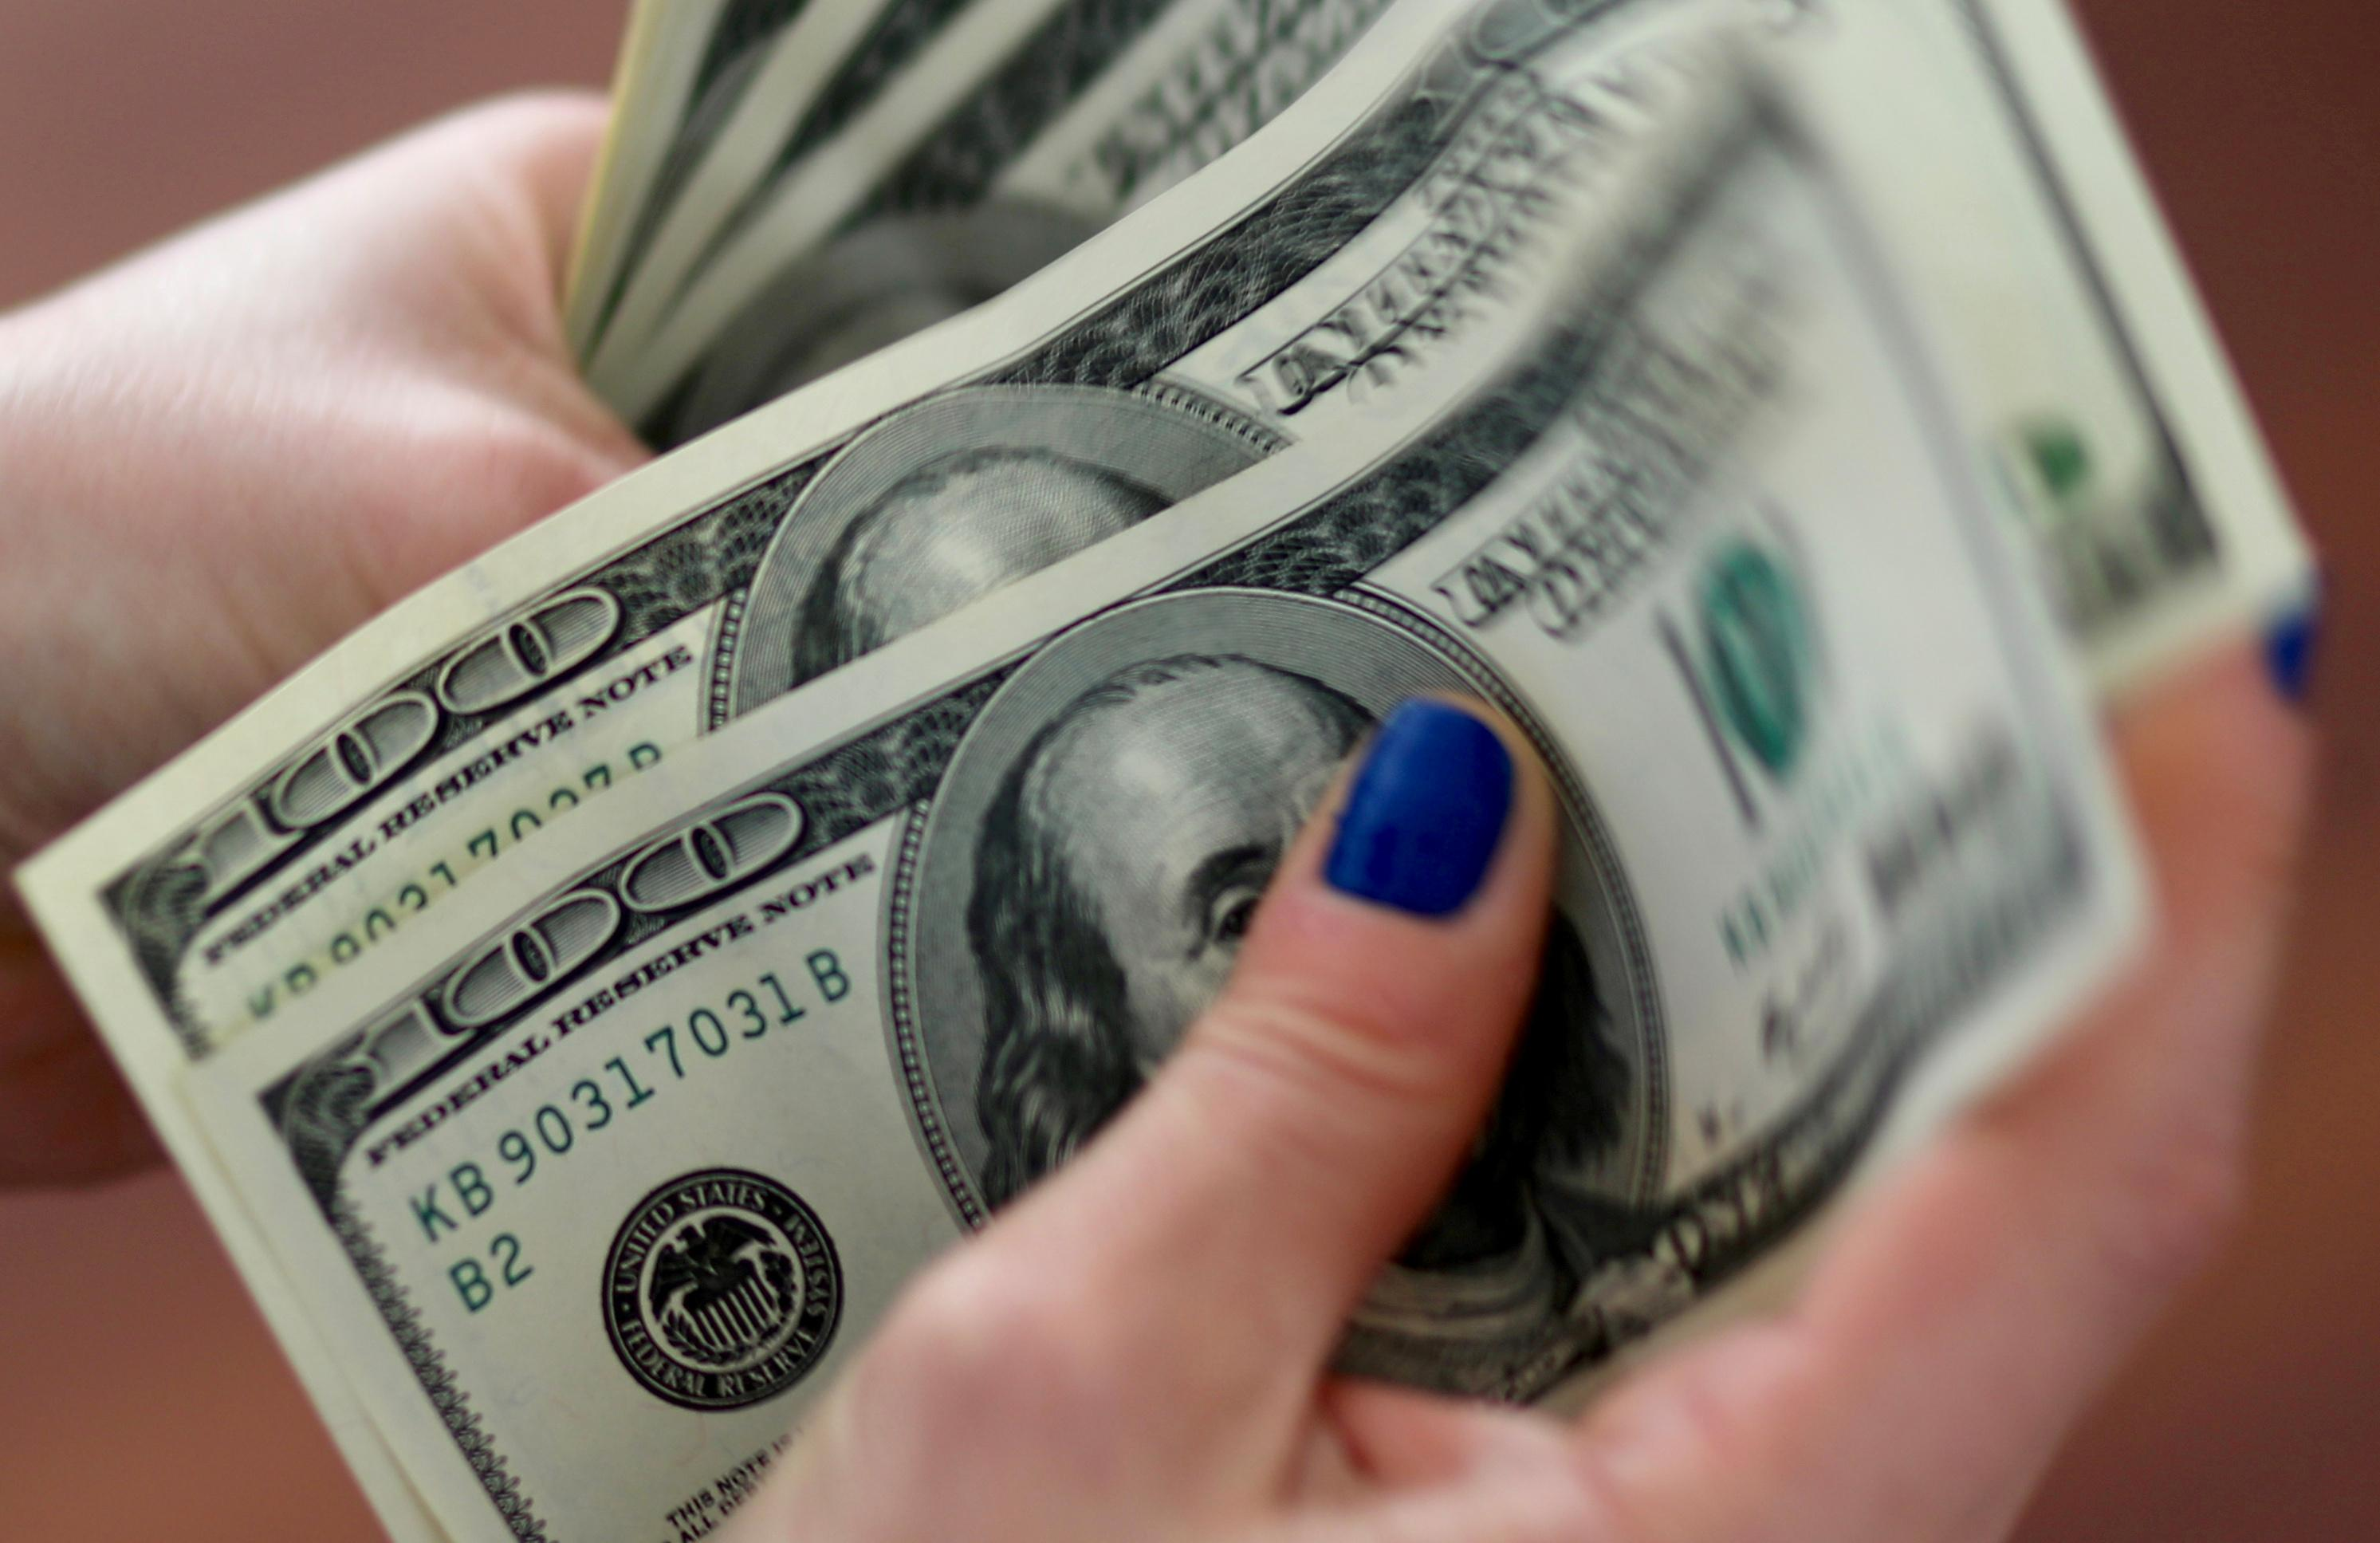 In swaps we trust? Disappearing dollars drive currency trading...